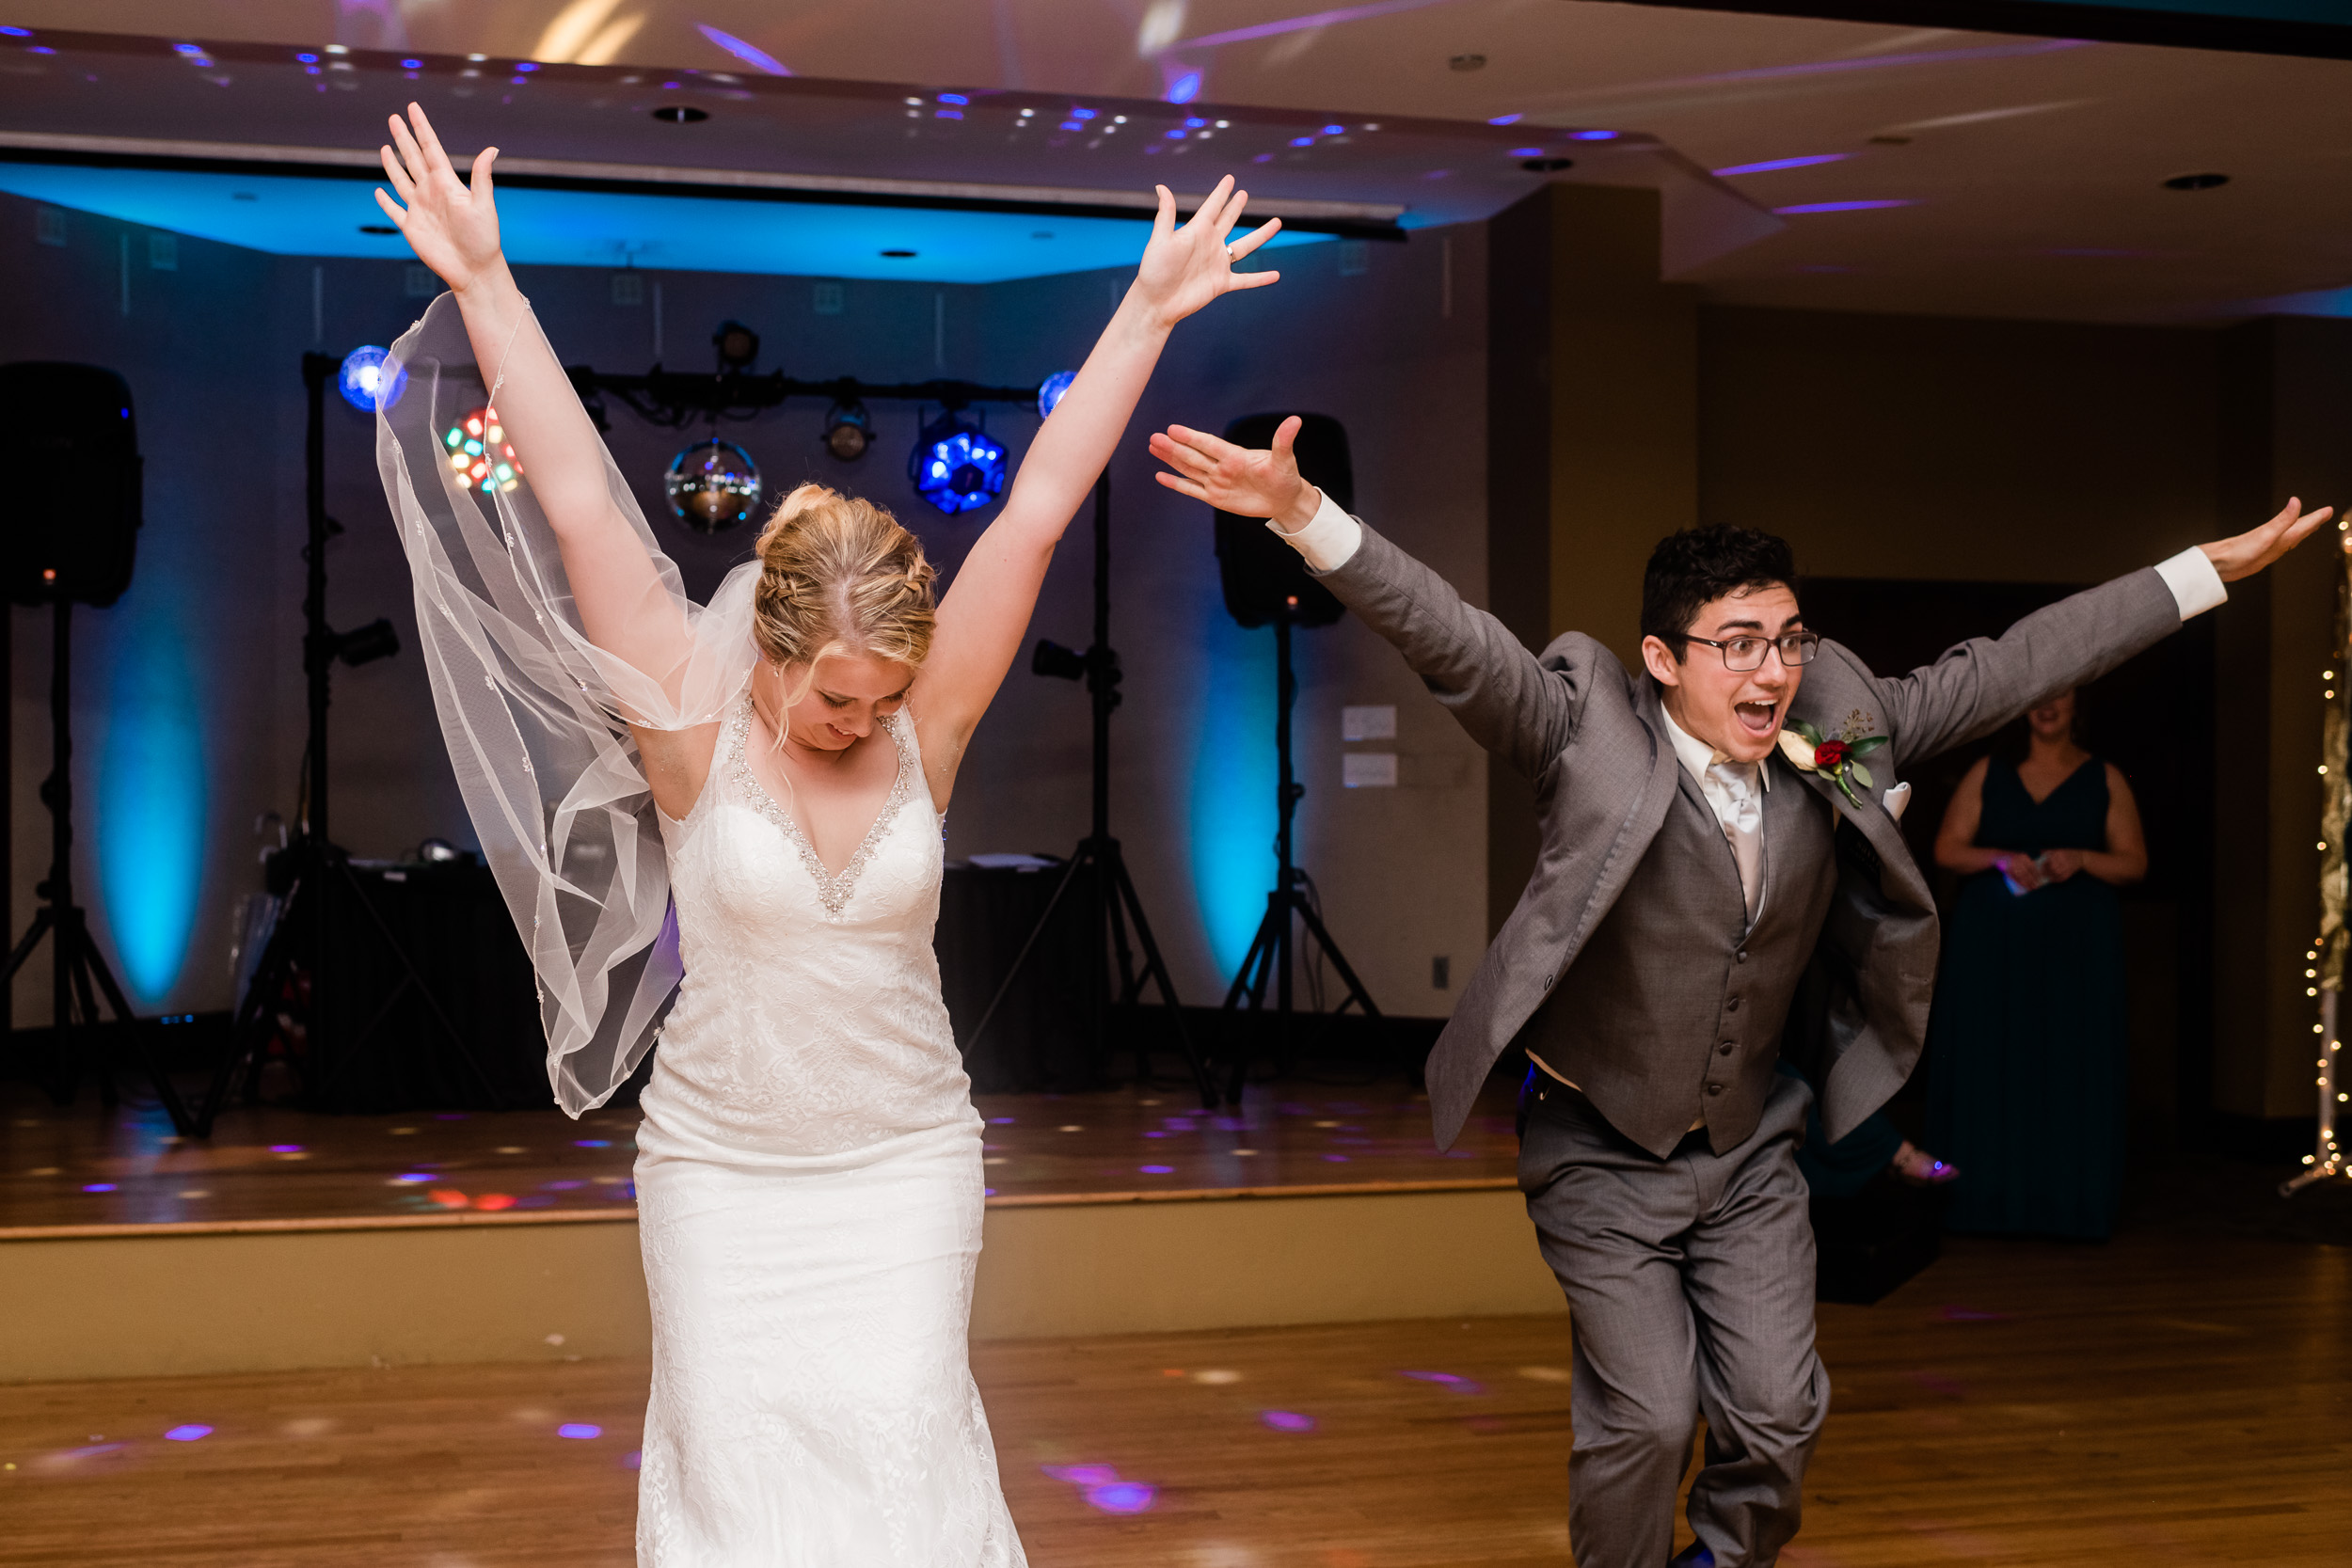 Bride and groom with hands in the air